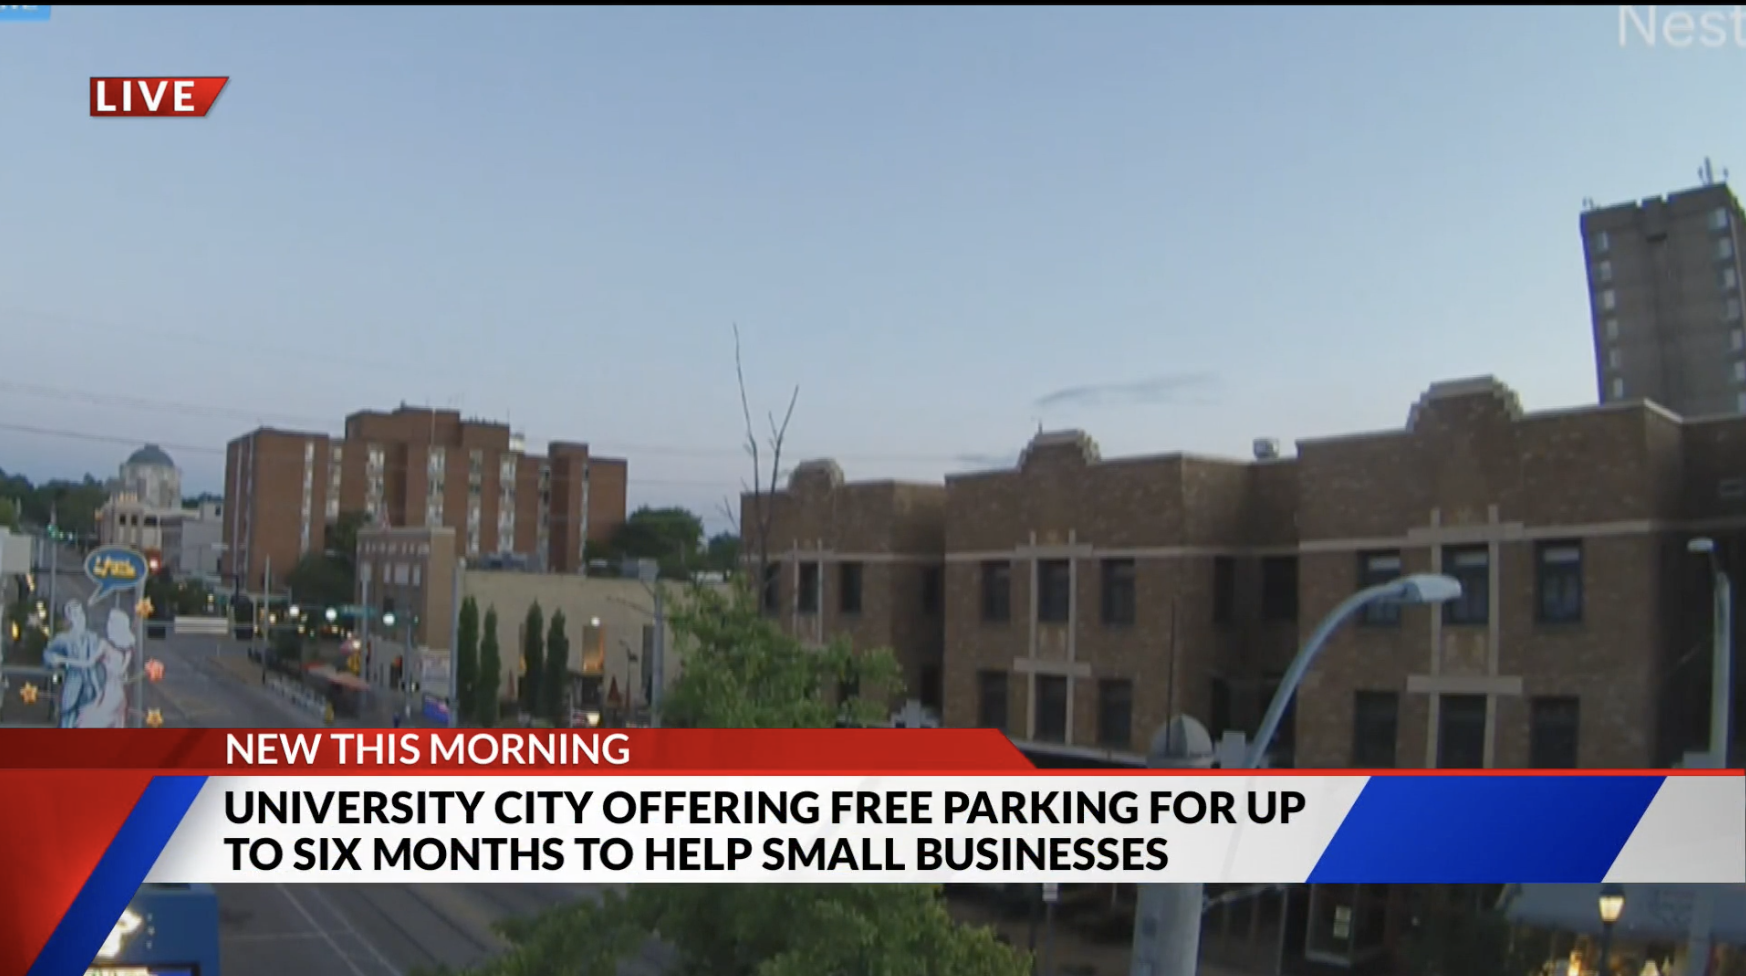 University City waiving parking meter fees to help small businesses